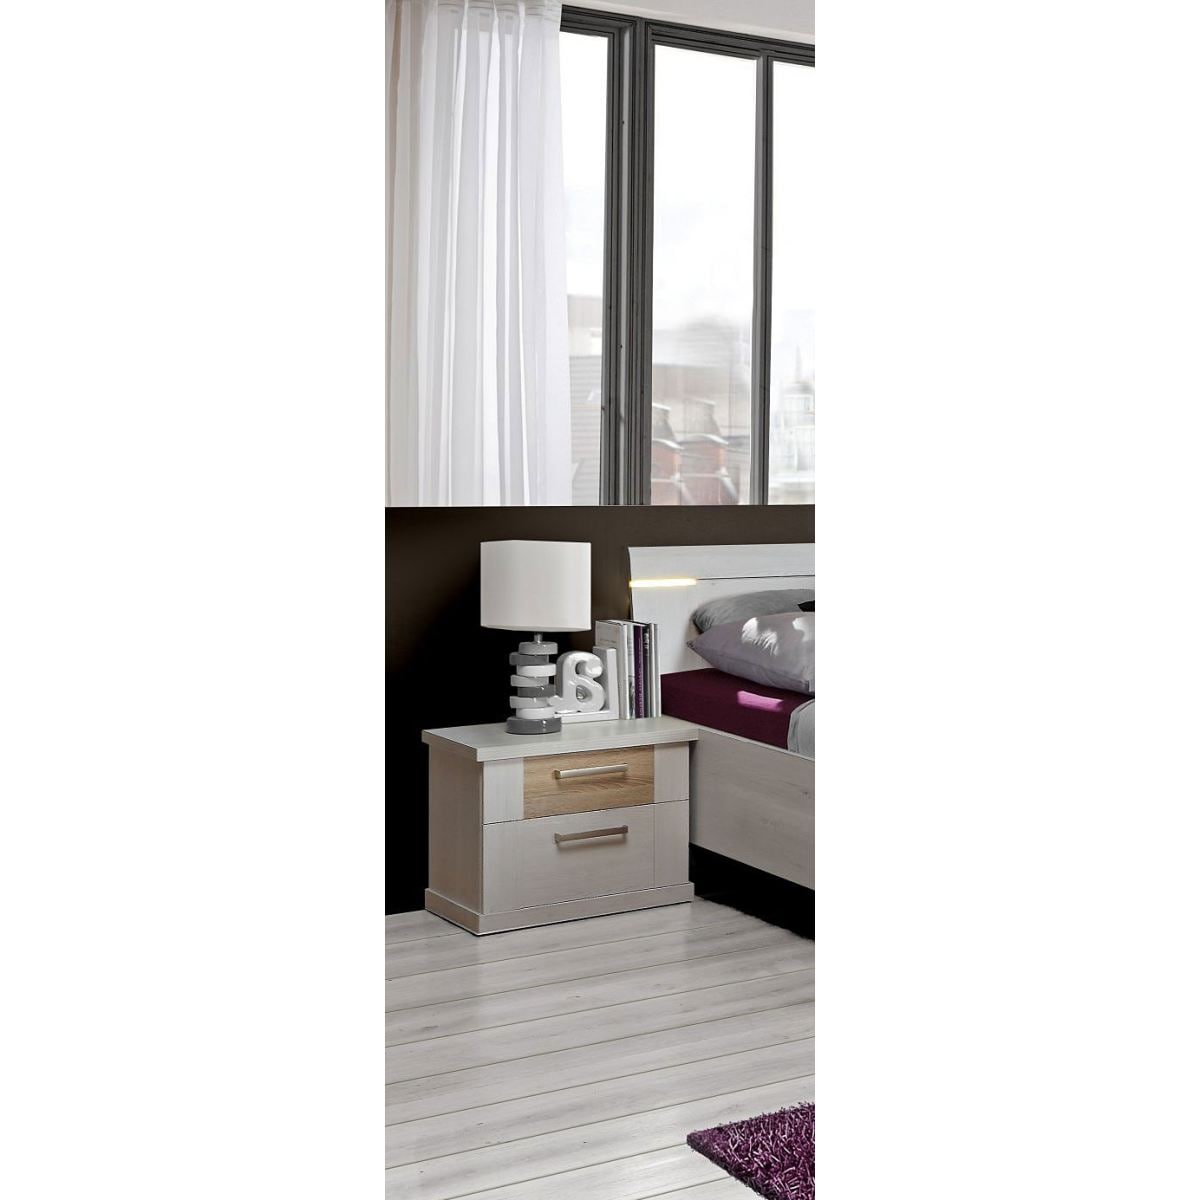 nachtkonsole calais in schneeeiche optik porta null. Black Bedroom Furniture Sets. Home Design Ideas